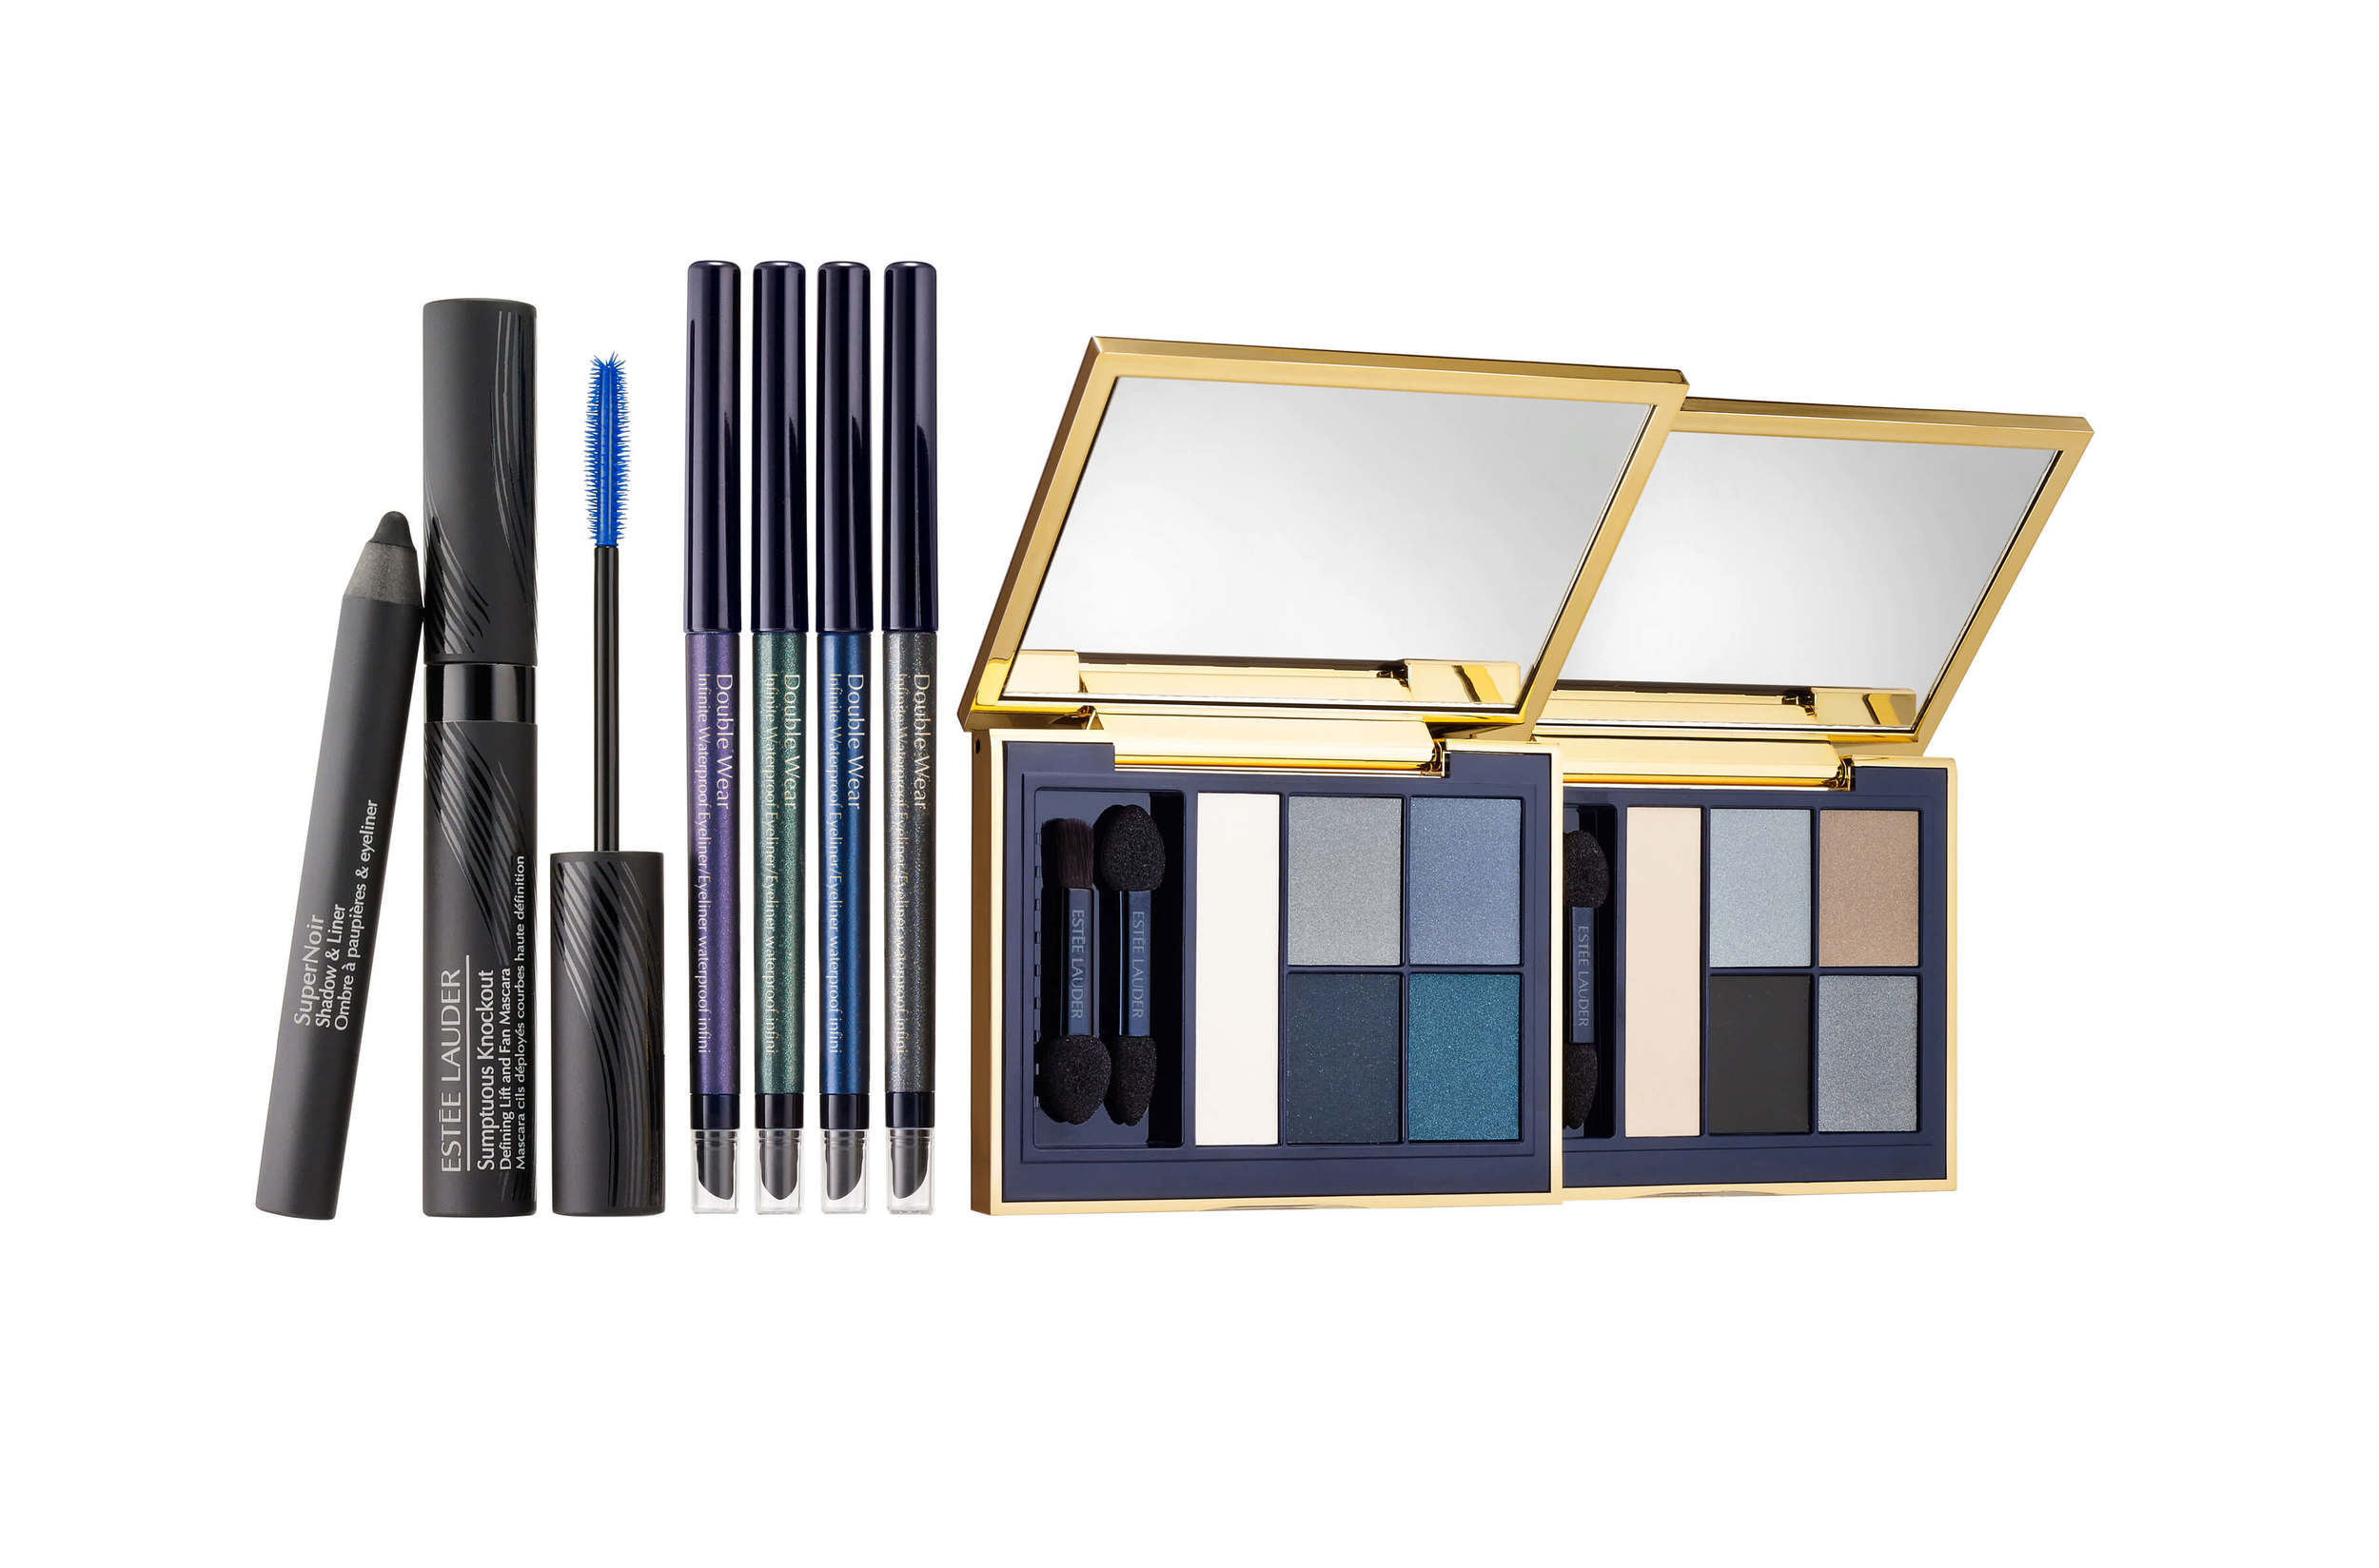 Estee Lauder Sumptuous Knockout Eye Collection.